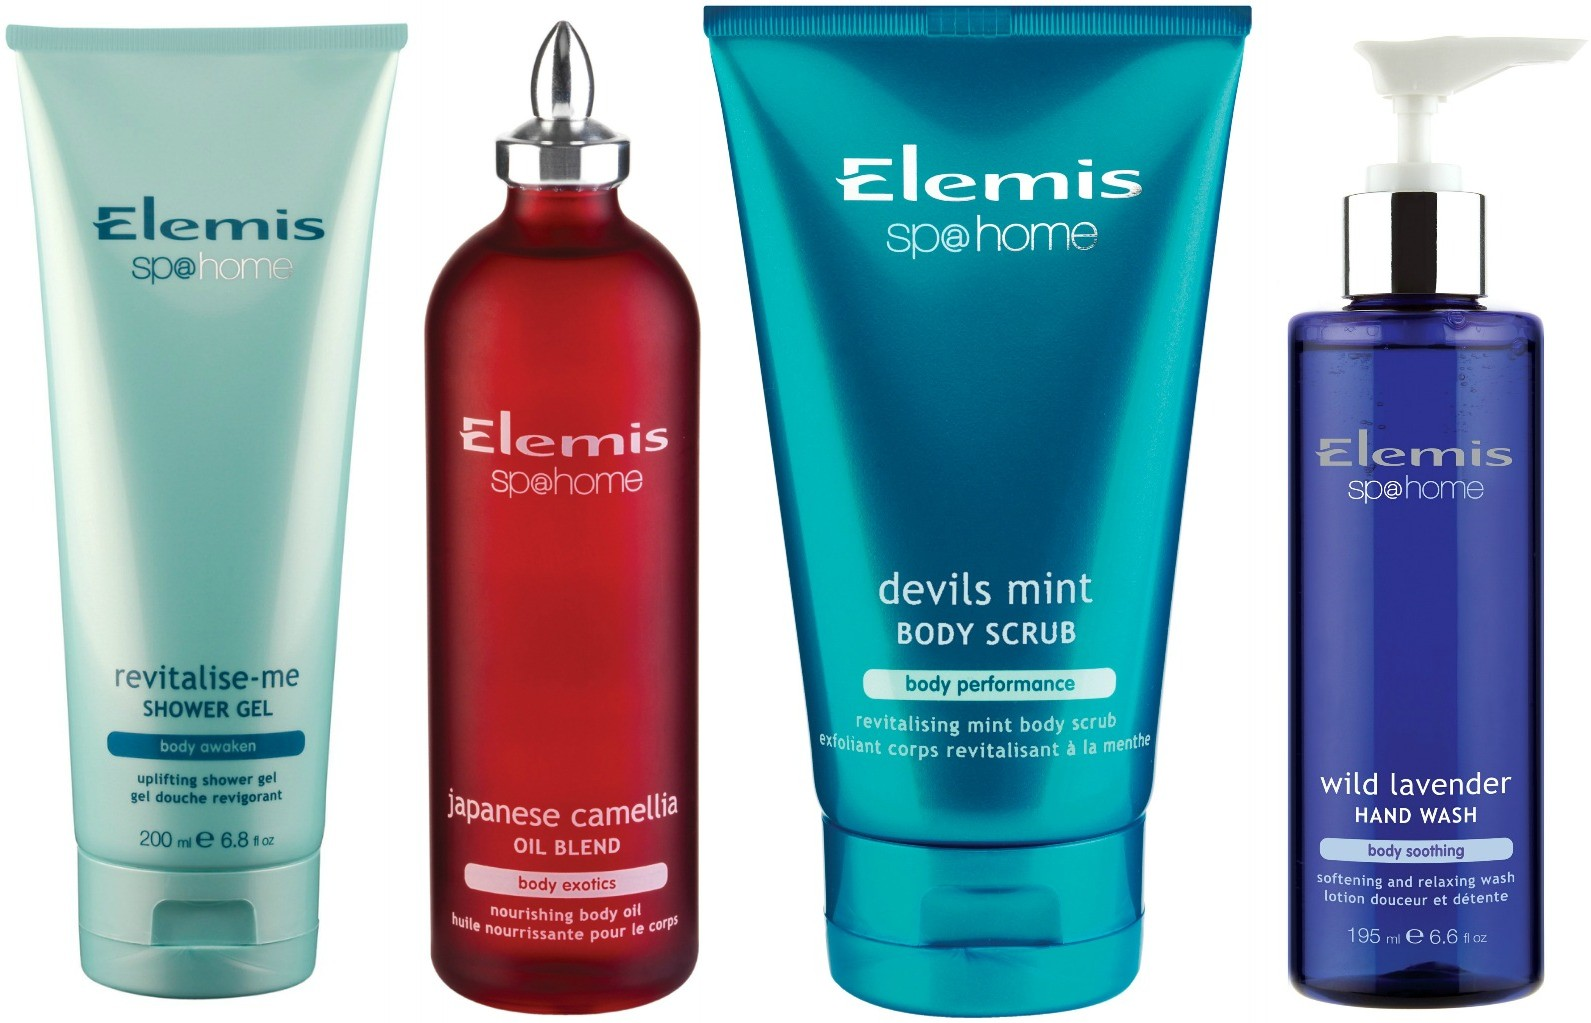 Elemis Spa Home Detox Reviews